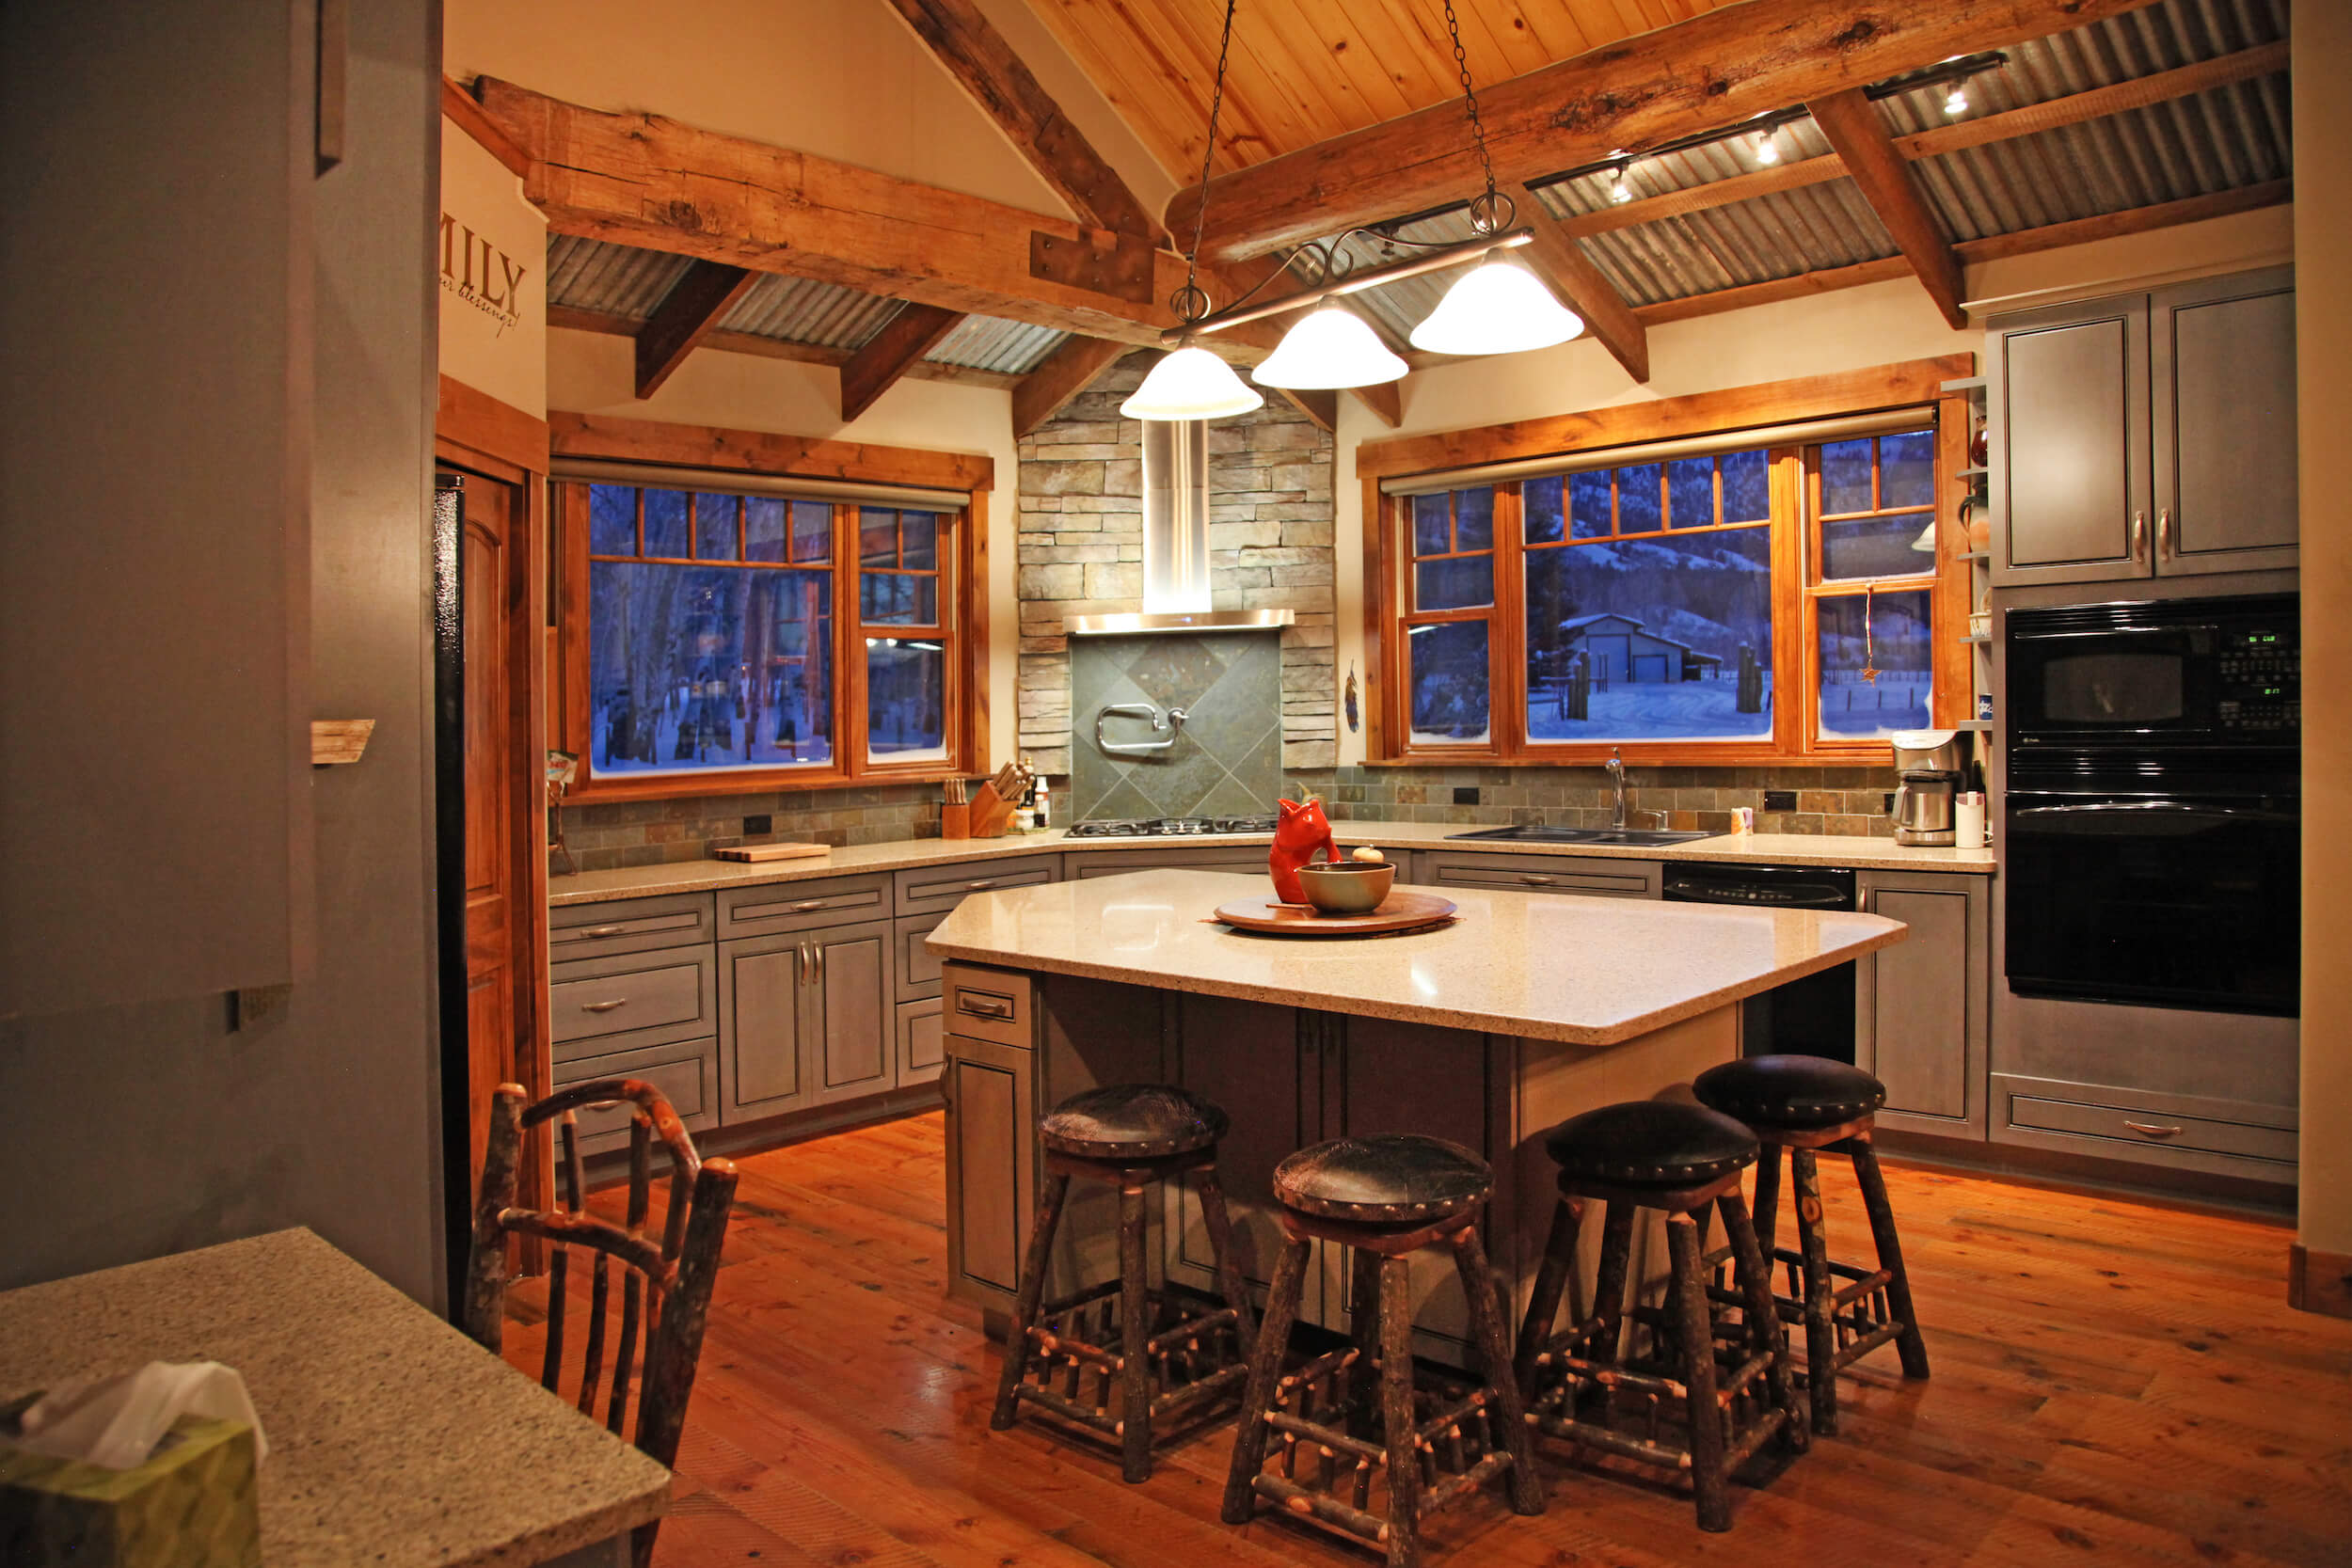 lakehouse_kitchen_close_up.jpg